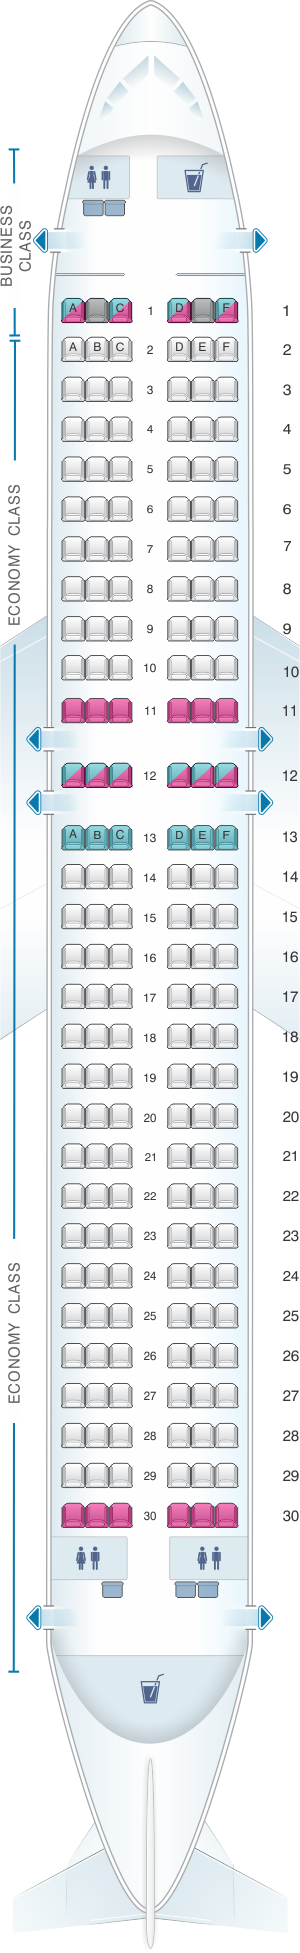 Seat map for airberlin Airbus A320 200